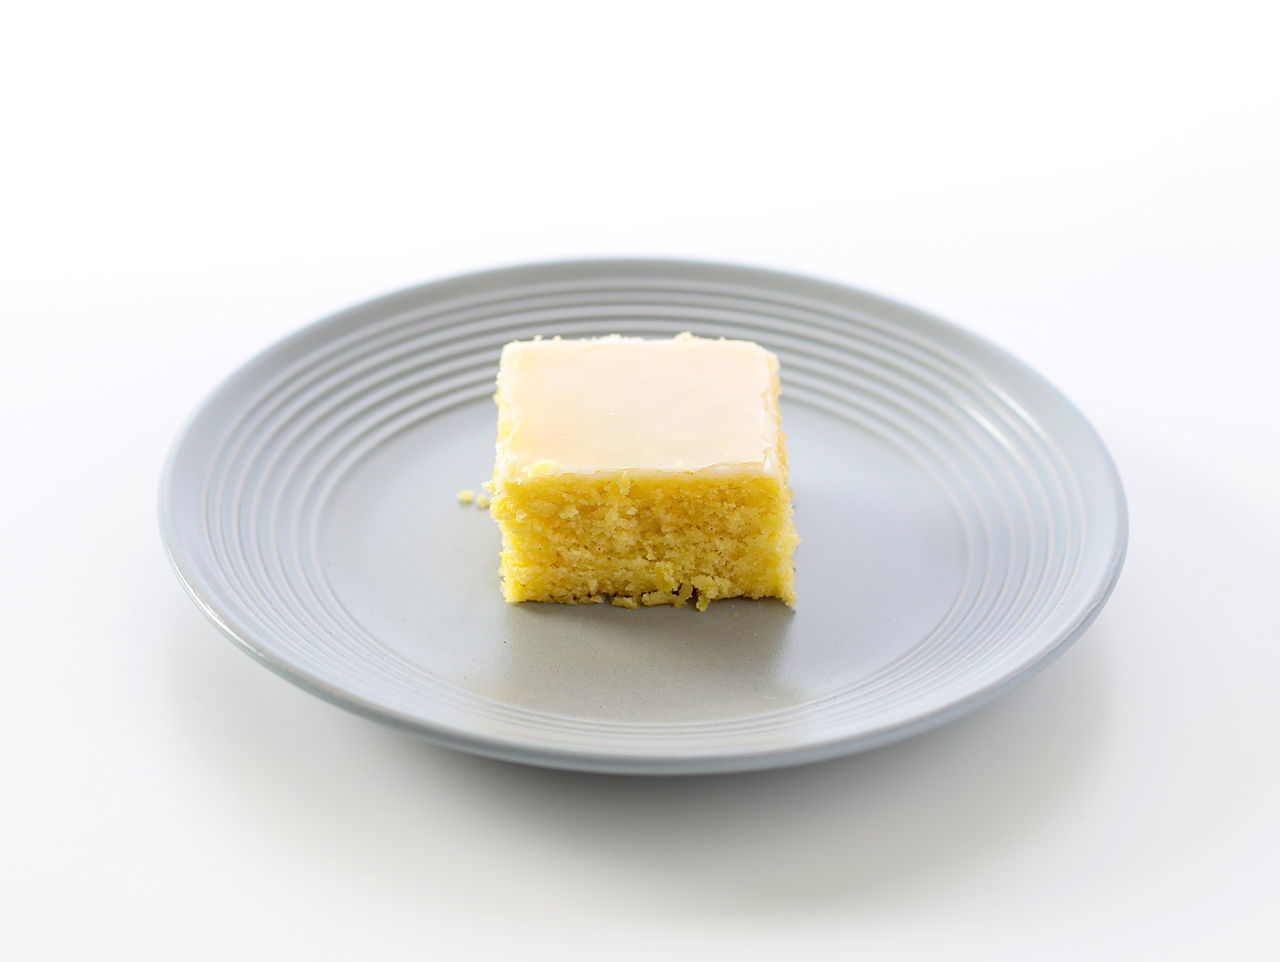 Lemon Squares | high res image available Bake Baked Baking Bite-size Dessert Food Food Photography Foodphotography Indulgence Lemon Lemon Bake Lemon Squares  Mouthful Ready-to-eat Studio Shot Sweet Tart Temptation White Background